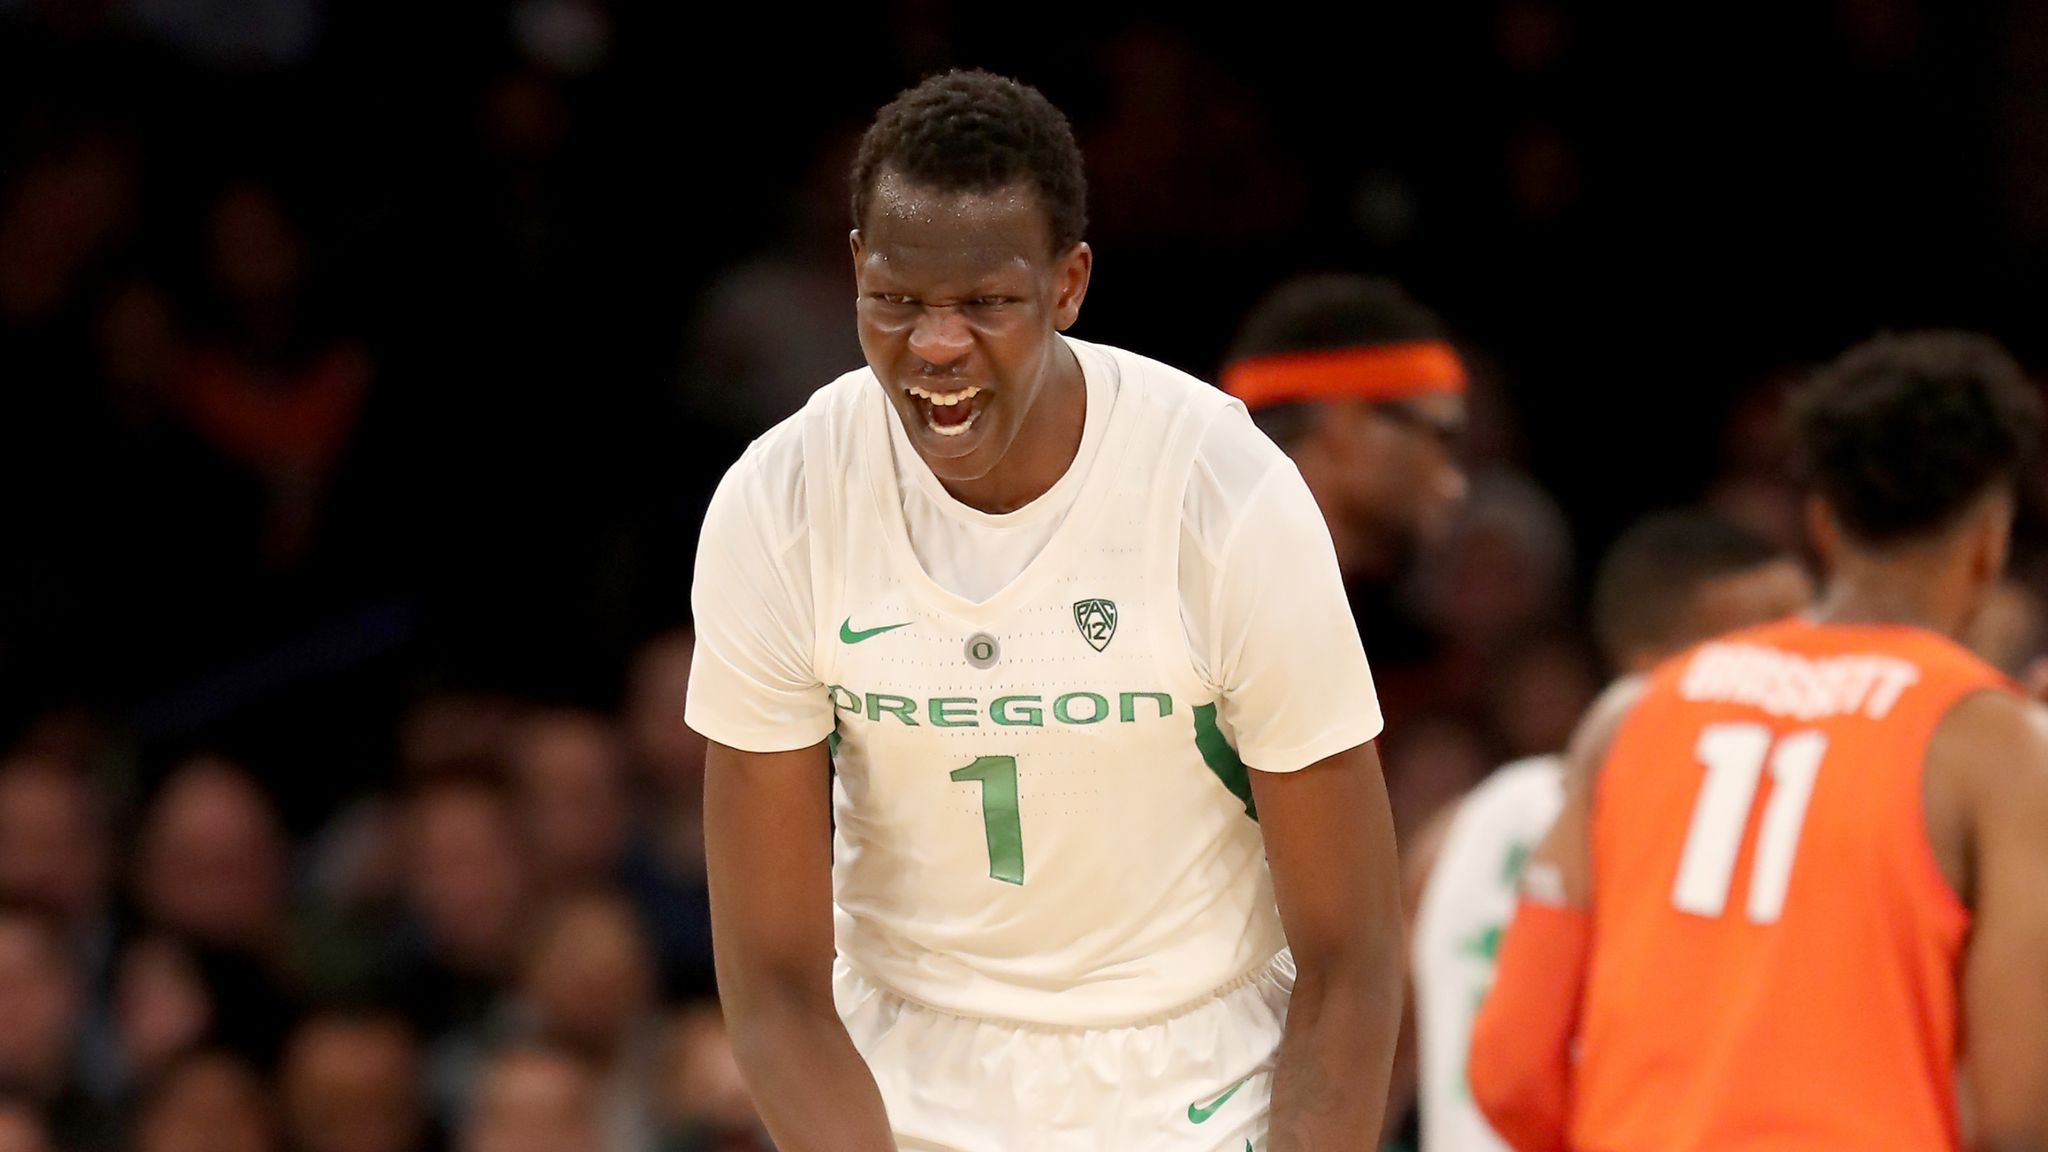 NBA Draft 2019: Five underrated players who could leap to